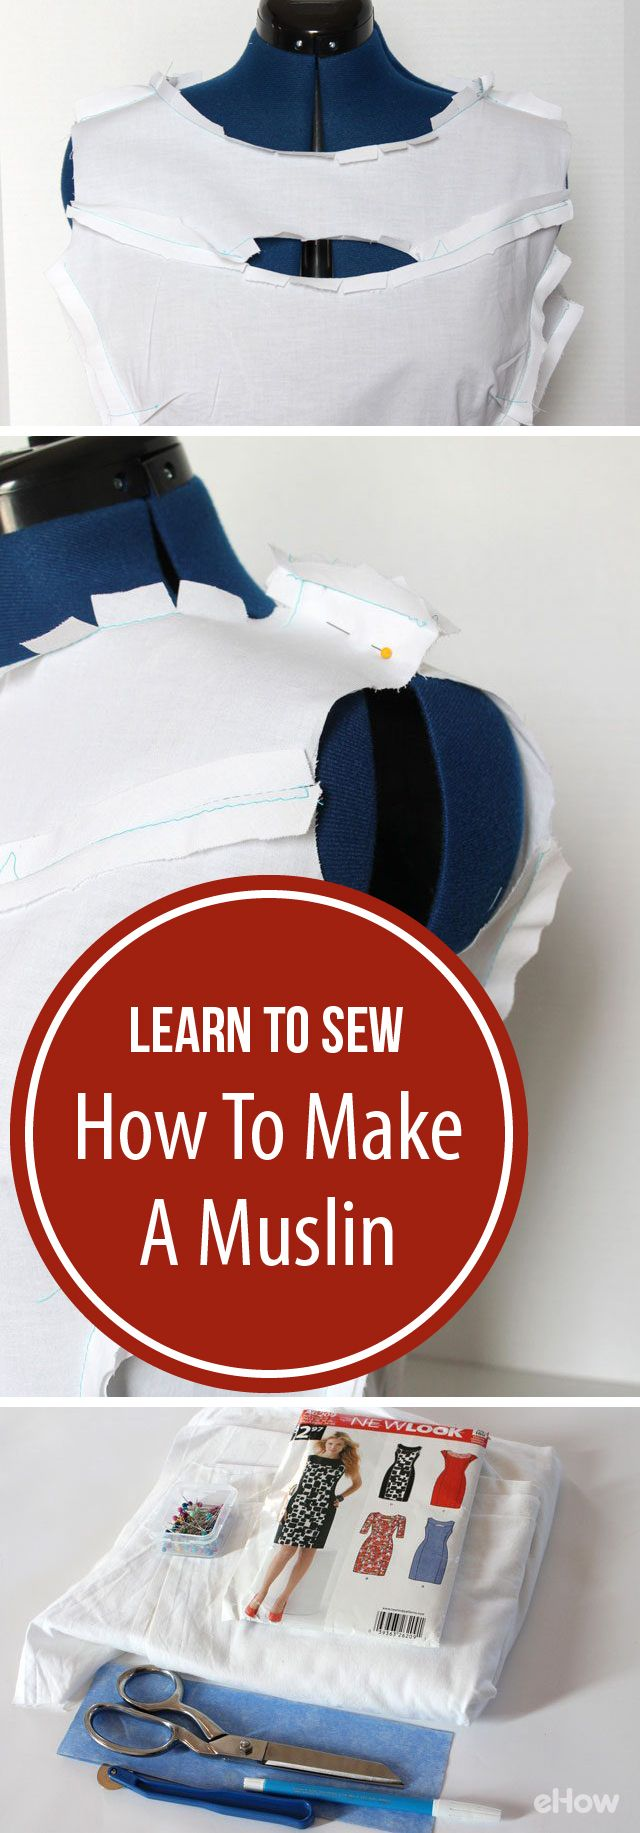 A muslin is essentially a practice garment made from a cheap fabric similar to the type of fabric that will be used for the real garment. Typically, you make one to check for fit as well as determine whether a style is good for your body type.  Great for beginners!  http://www.ehow.com/how_12343144_learn-sew-make-muslin-check-fit.html?utm_source=pinterest.com&utm_medium=referral&utm_content=freestyle&utm_campaign=fanpage